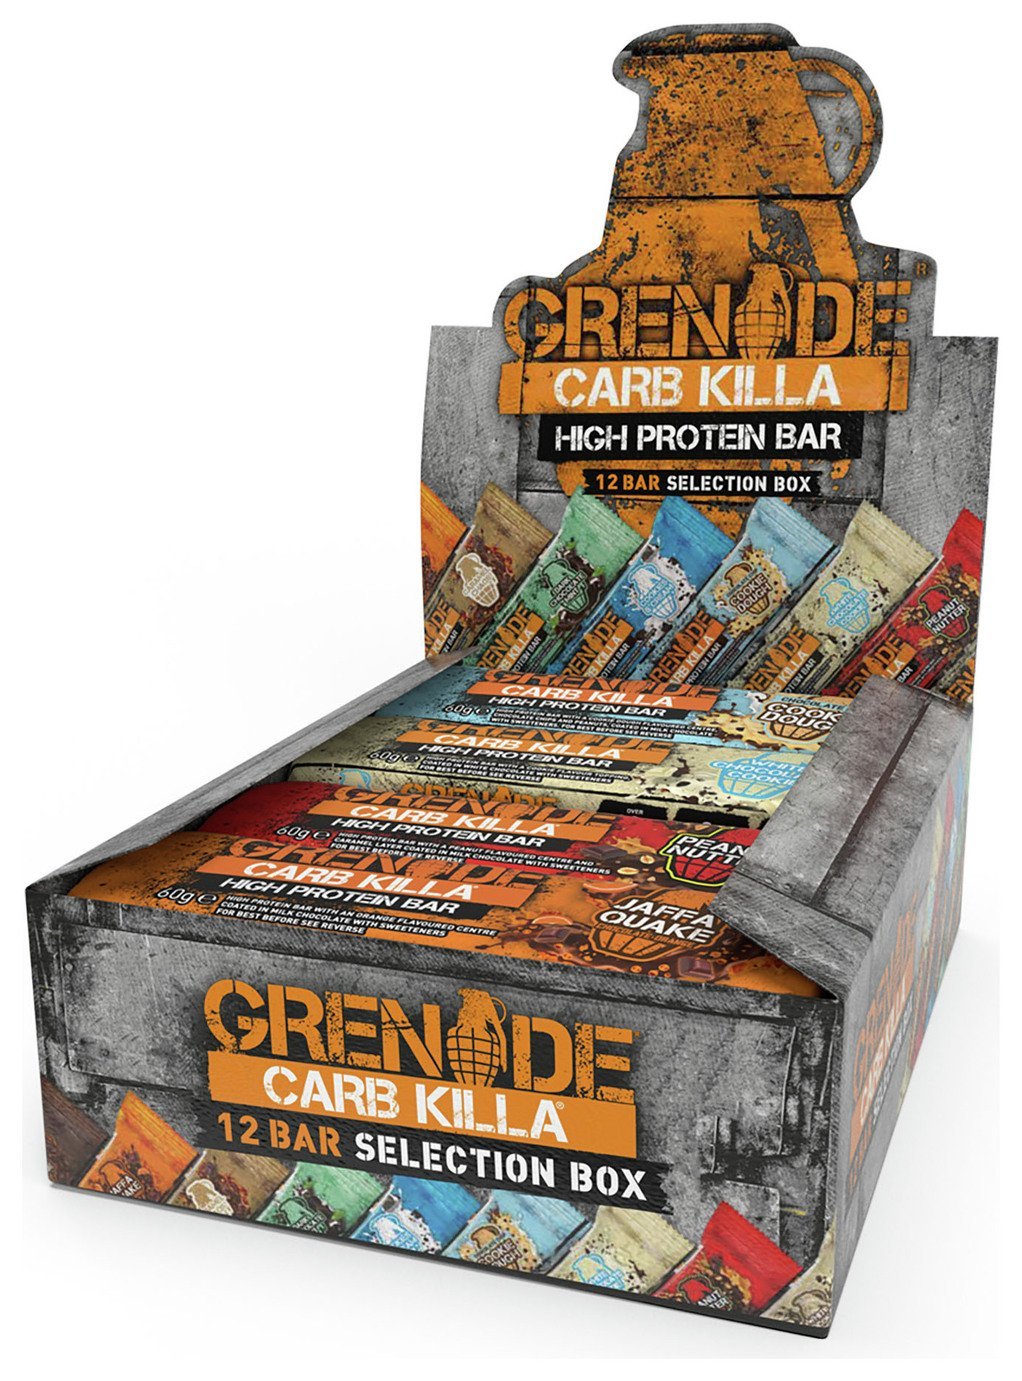 Grenade Carb Killa Selection Box Qty 12